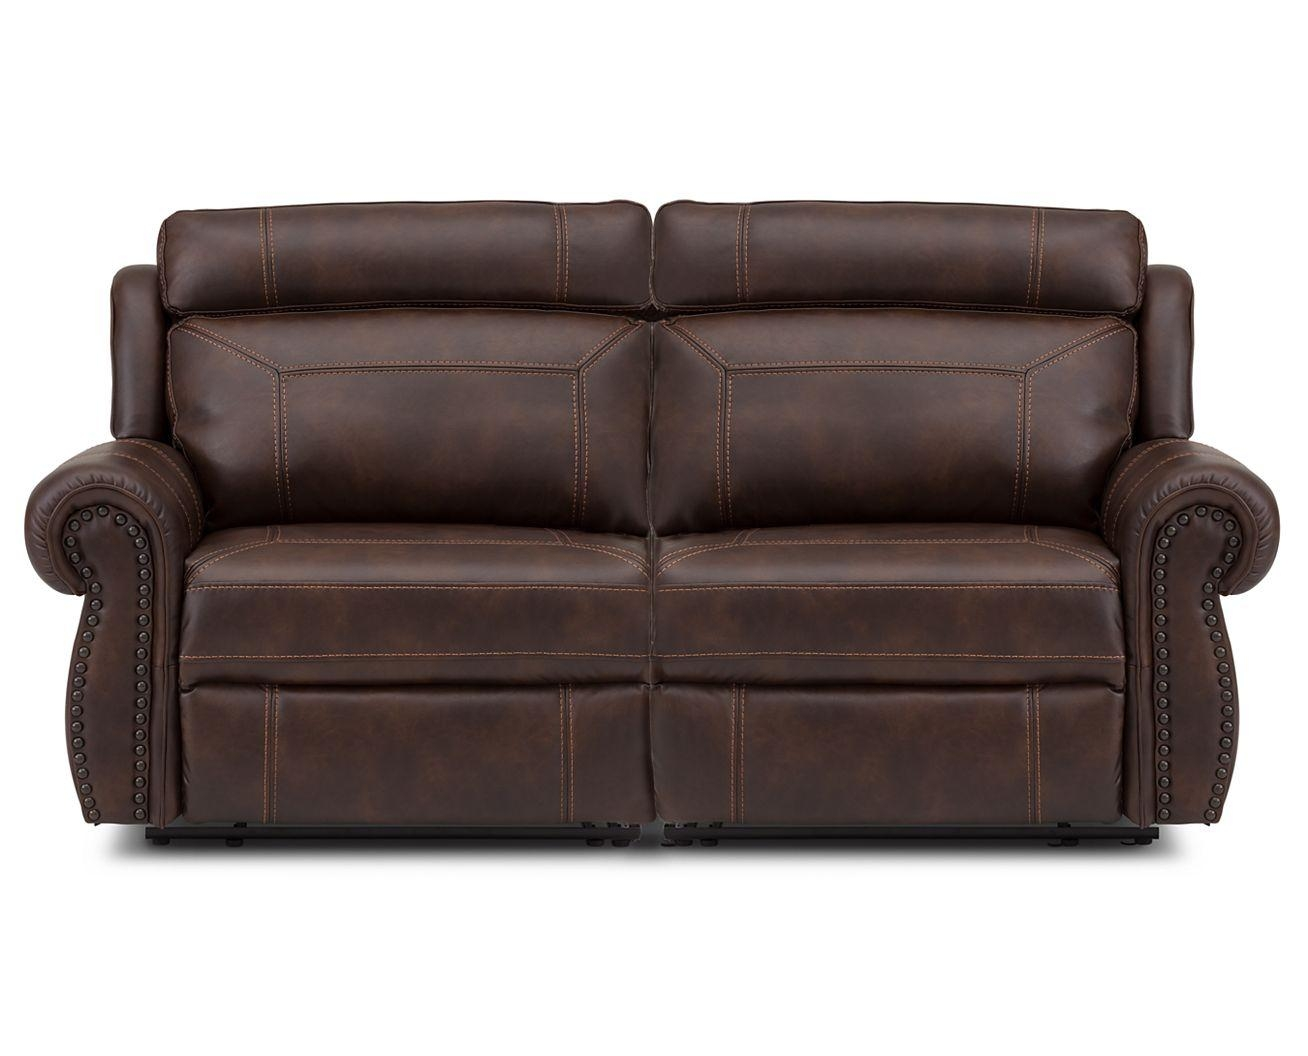 Sofas: Carlyle Sofa | Custom Sofa Nyc | Carlyle Sofa Inside Custom Sofas Nyc (Image 14 of 20)